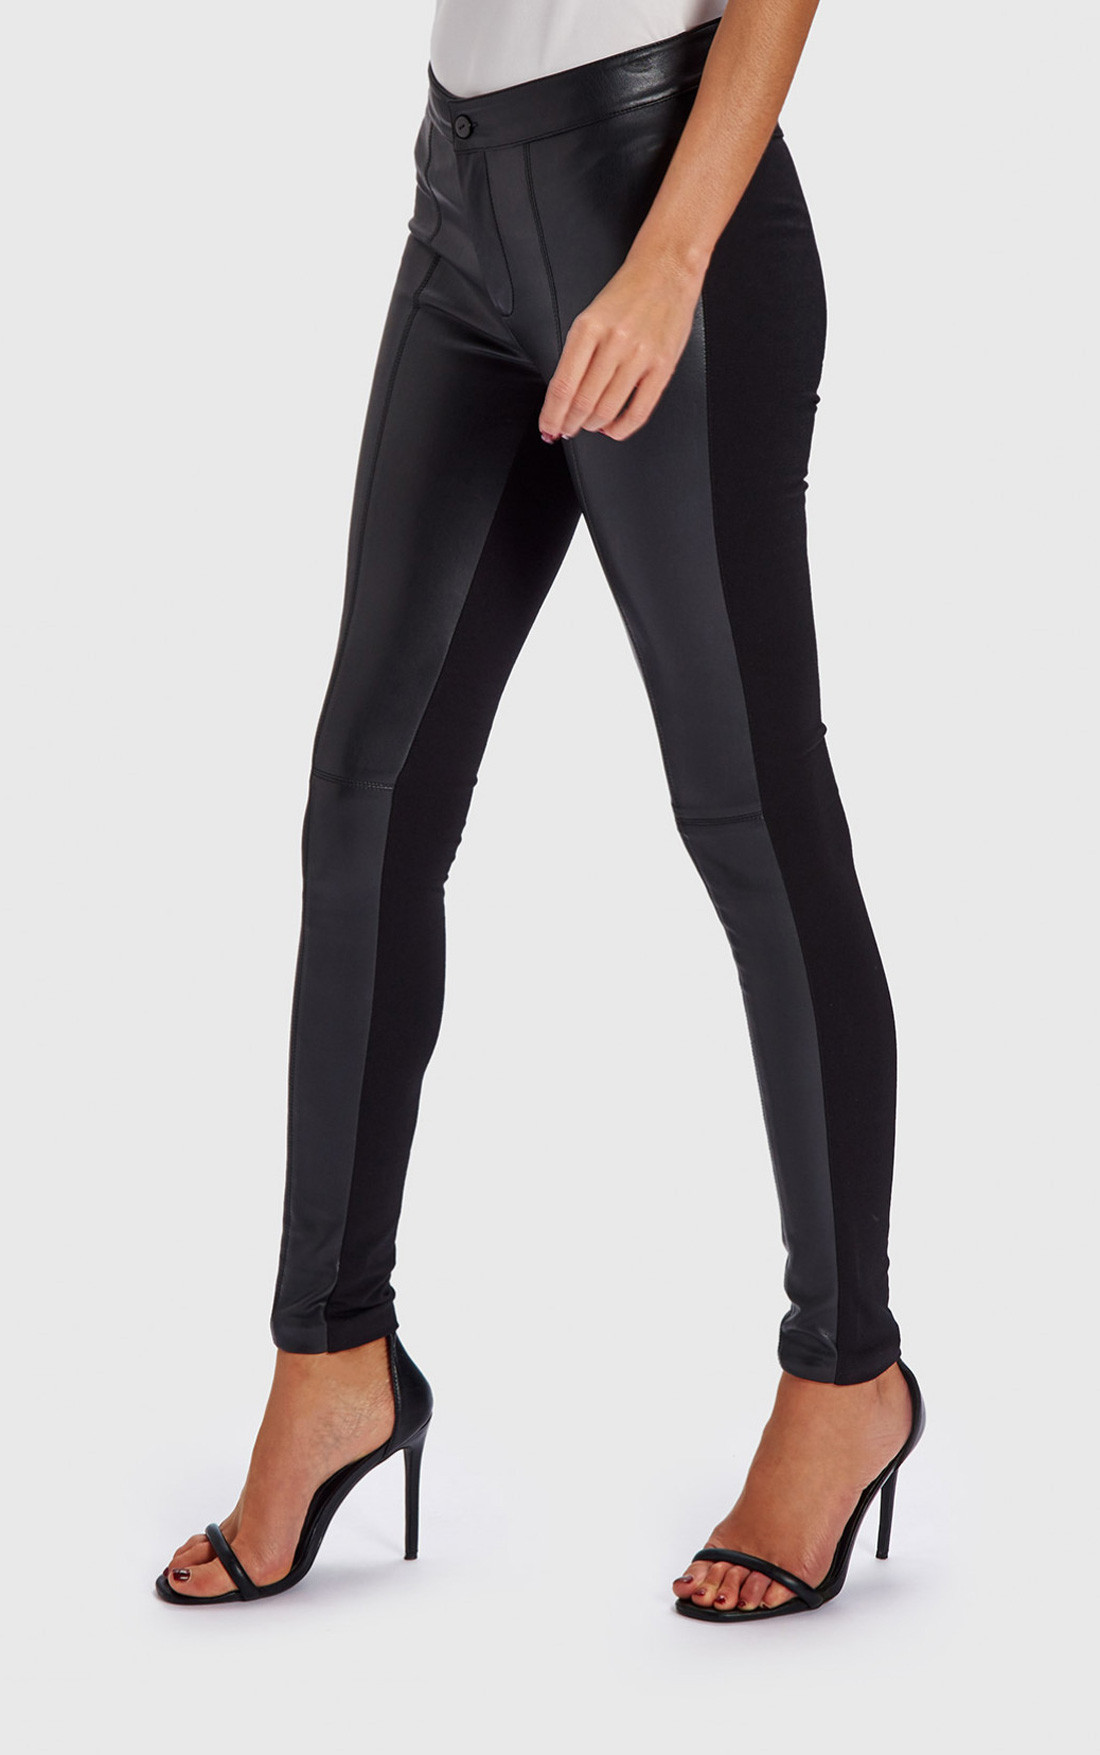 Forever Unique - Nell Black Leather Effect Jeggings (WF1805)